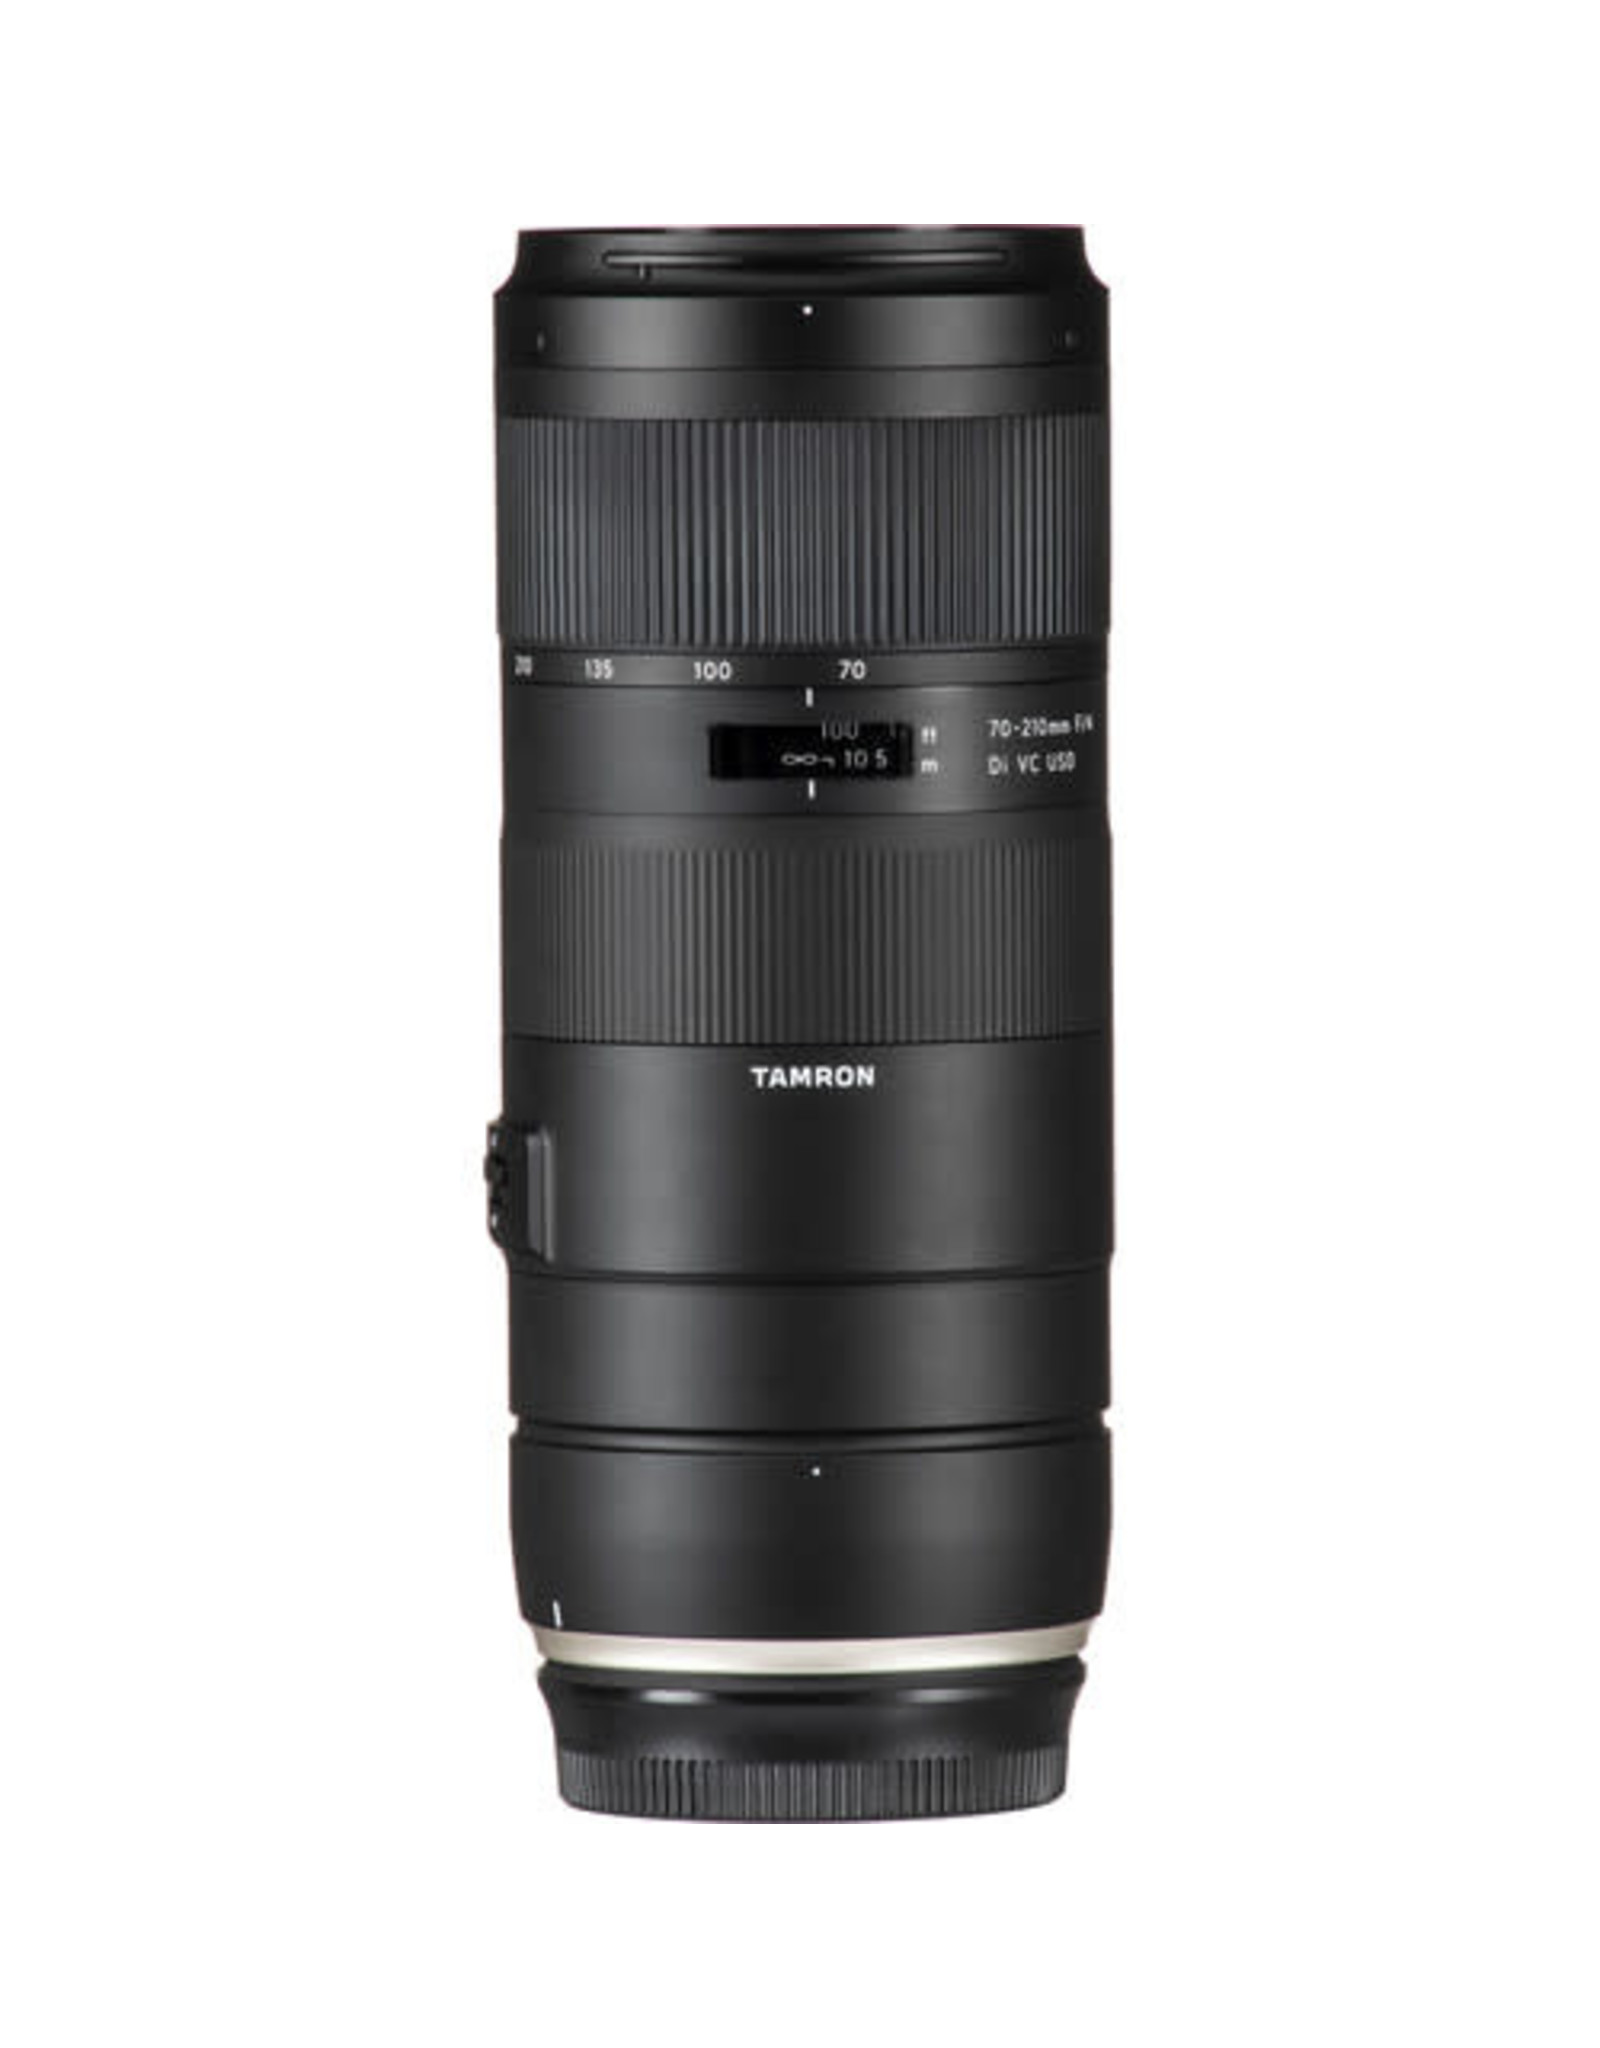 Tamron Tamron SP 70-210mm f4 Di VC USD w/hood